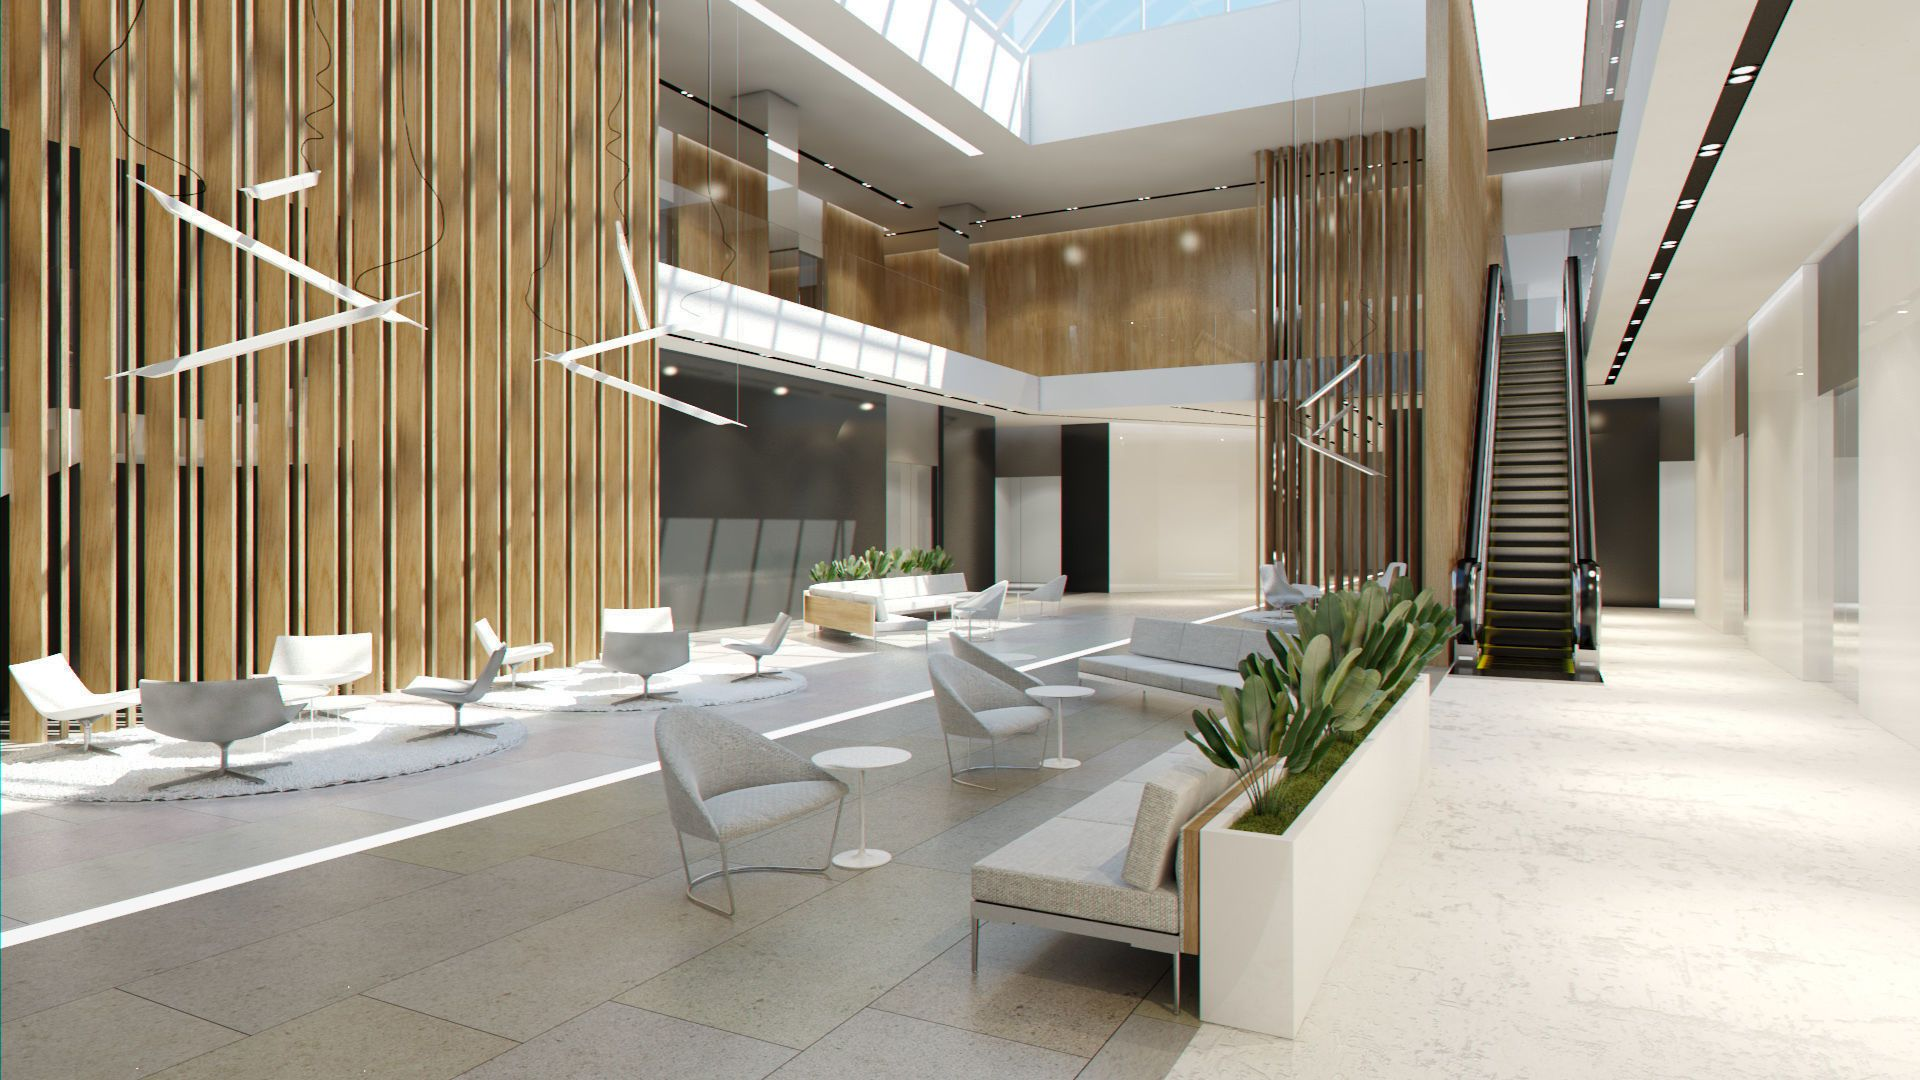 Lobby hall foyer office commercial business scene interior 3d model max obj fbx stl 3dm dwg 2